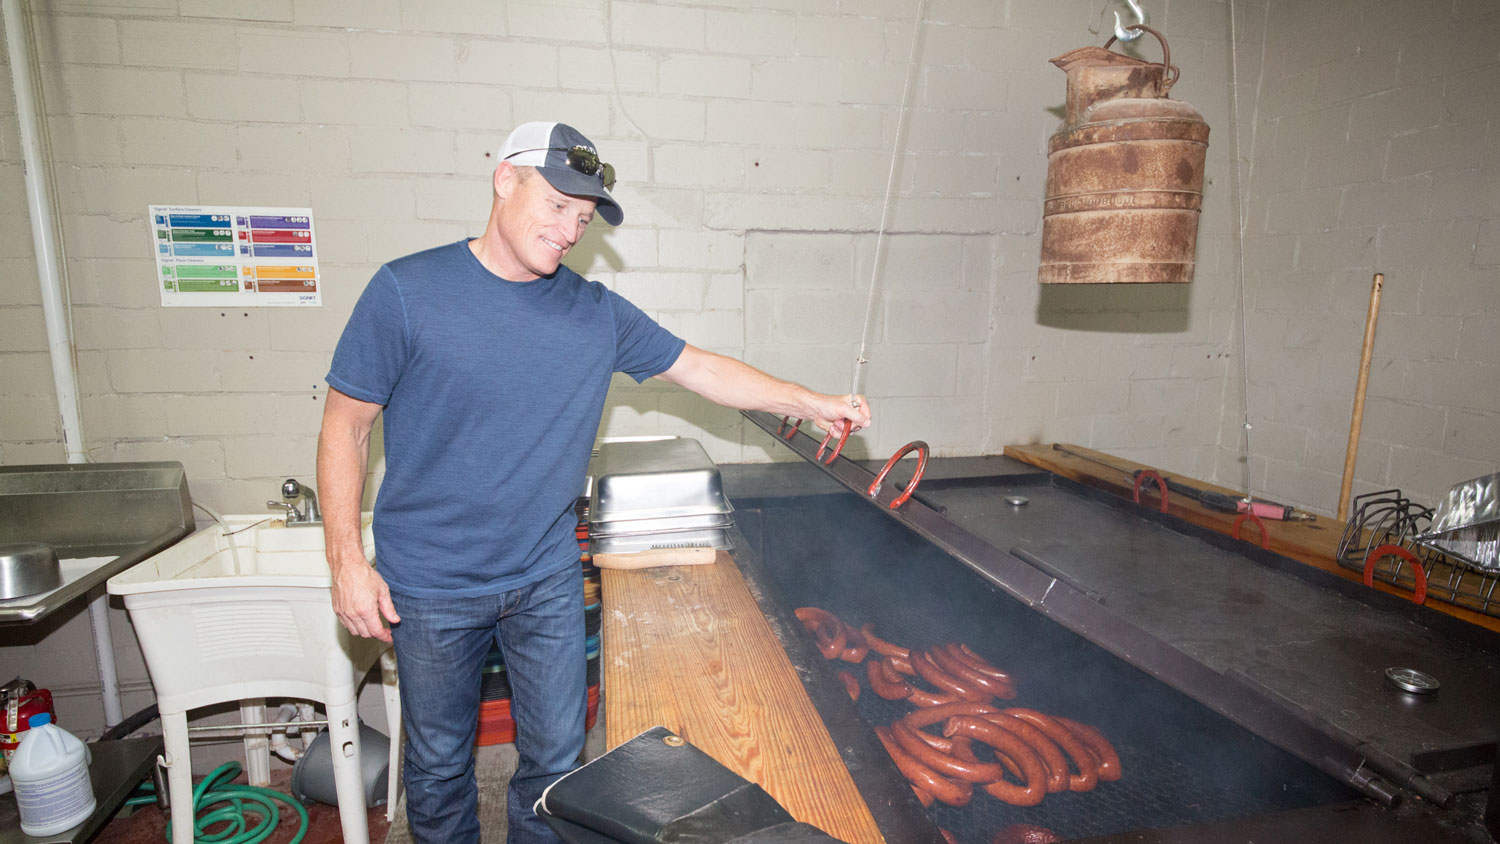 Old 300 BBQ owner Mike Betzer inspects sausage on the grill in the kitchen